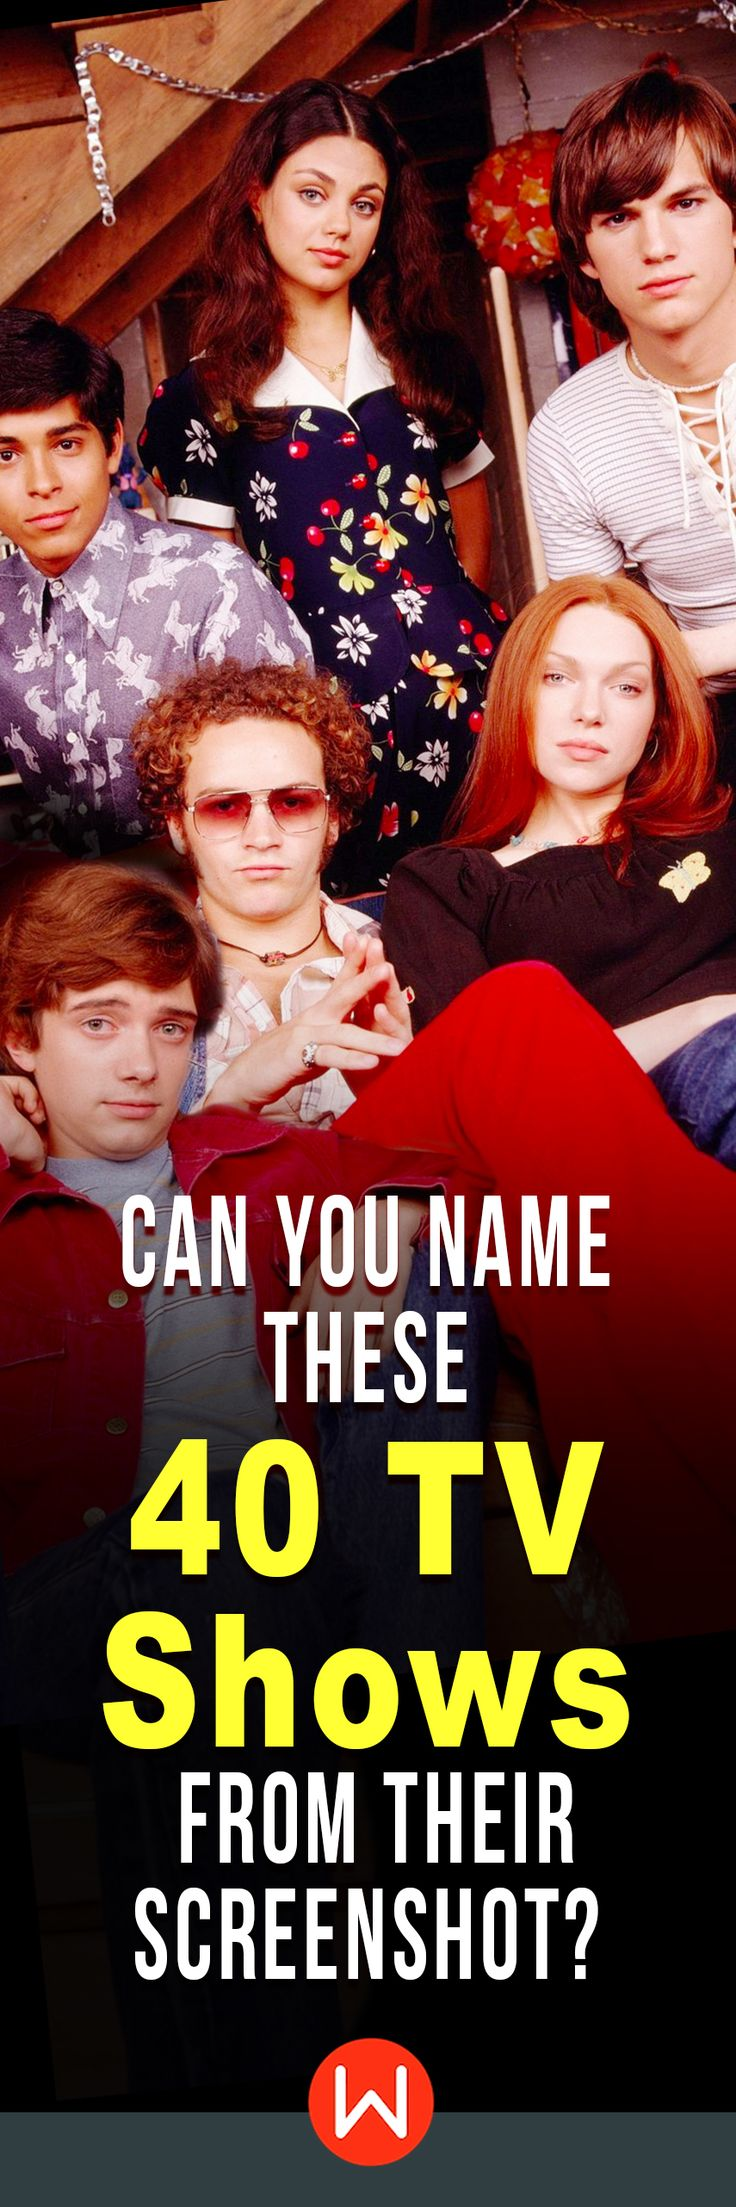 Top 40 Tv shows. This is a quiz on the most popular and recognized American television shows to have ever aired. From That 70s show to Seinfeld to Friends, do you know all of these iconic tv shows? American sitcoms quiz, Fun quiz, TV test, Pop Culture quiz. #tvshows #sitcoms #quiz #popculture